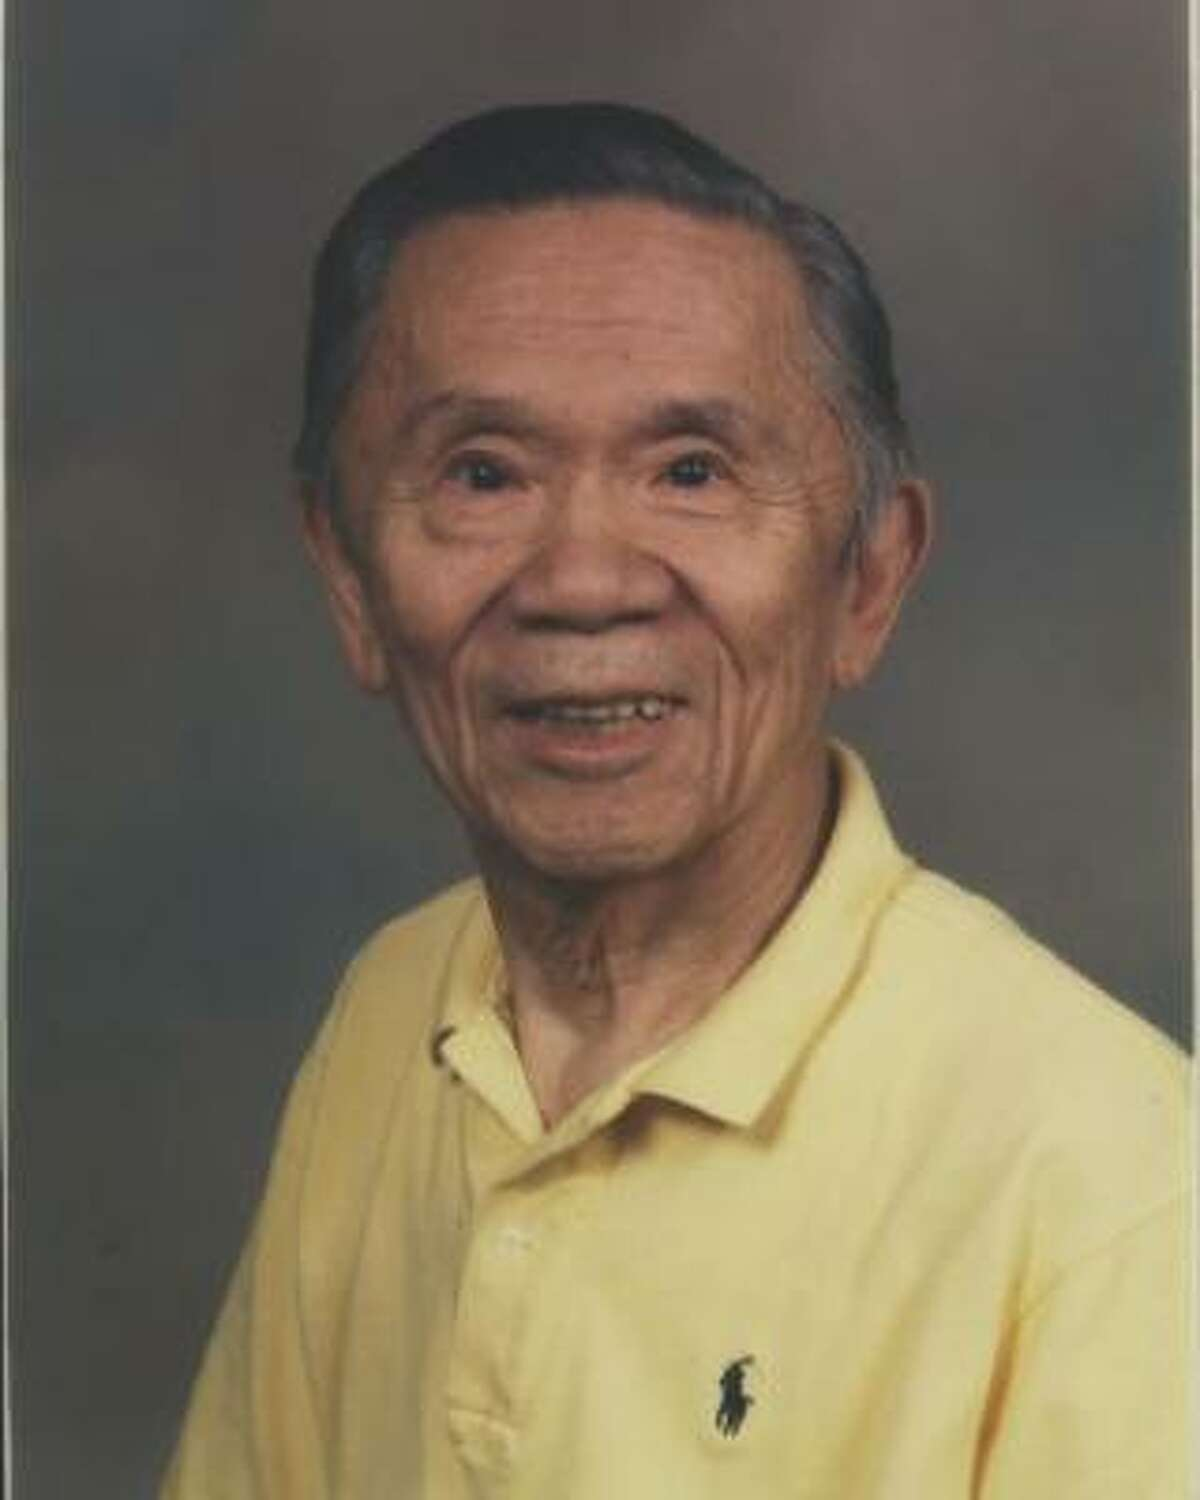 Charles Chien, who died Thursday at 93, had lived in Houston since 1961.